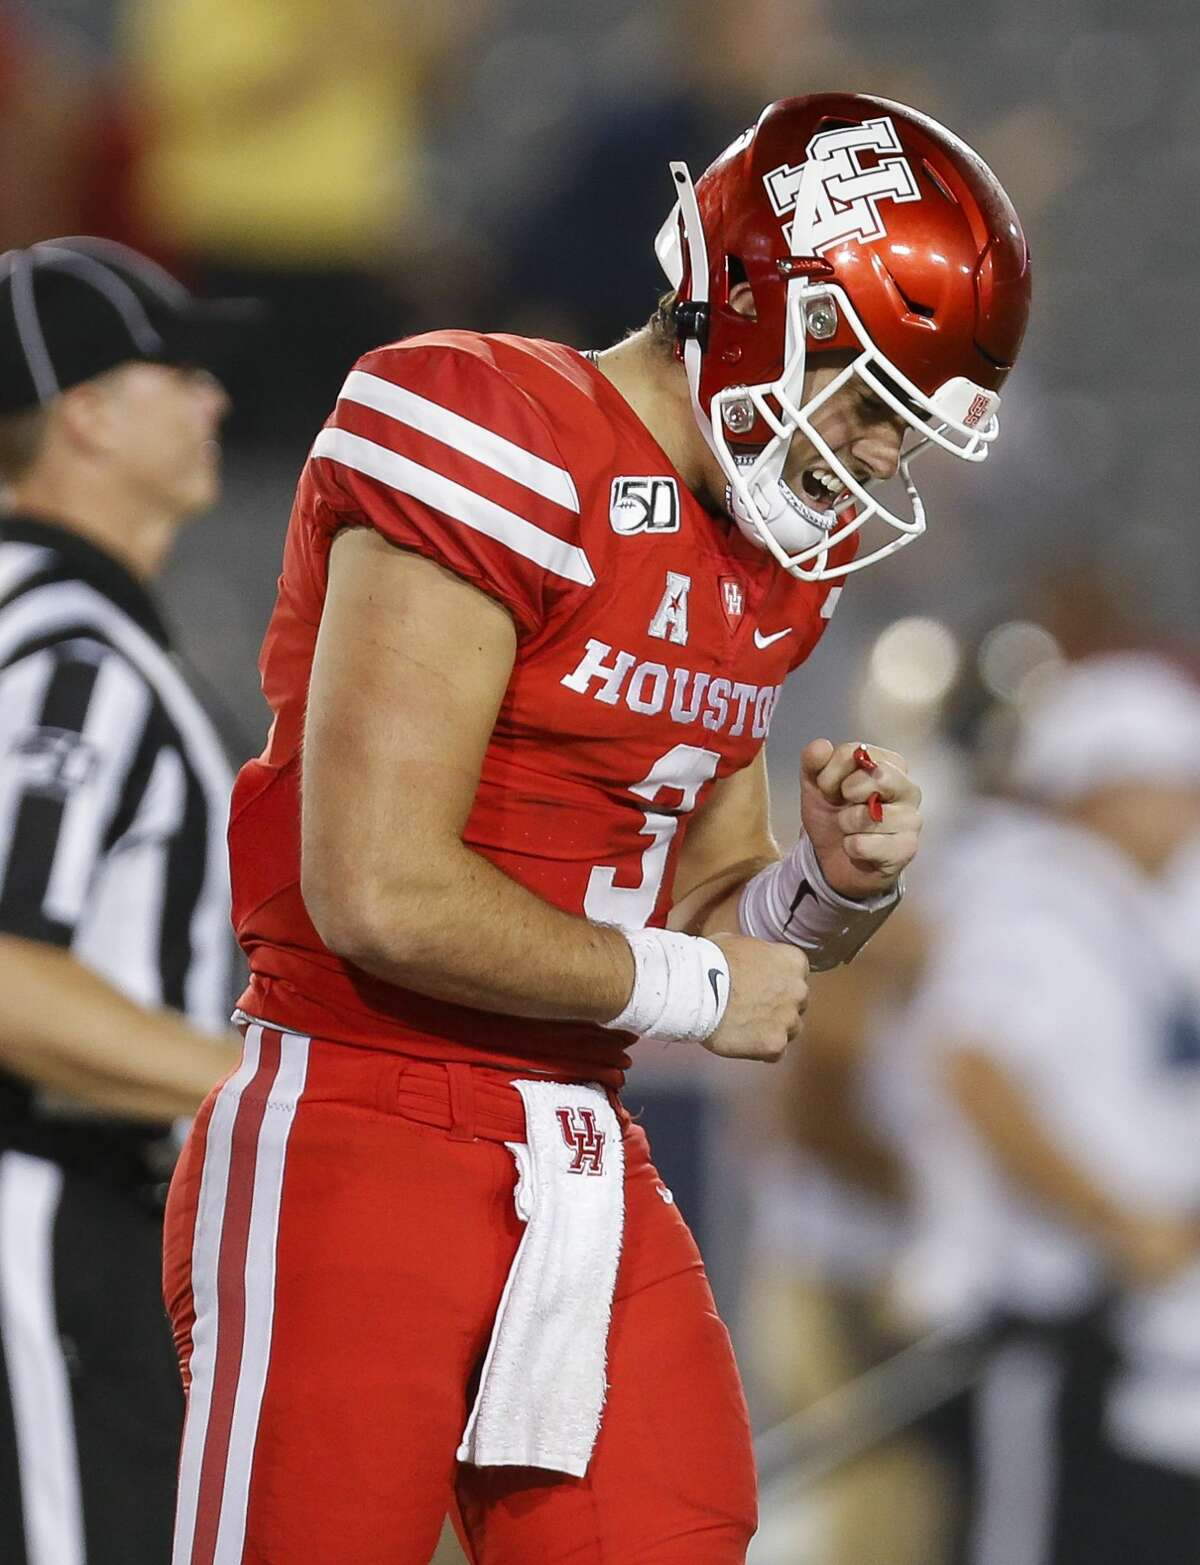 Houston Cougars quarterback Clayton Tune (3) reacts after throwing an interception against the Navy Midshipmen during the fourth quarter of an NCAA game at TDECU Stadium Saturday, Nov. 30, 2019, in Houston. Navy won 56-41.